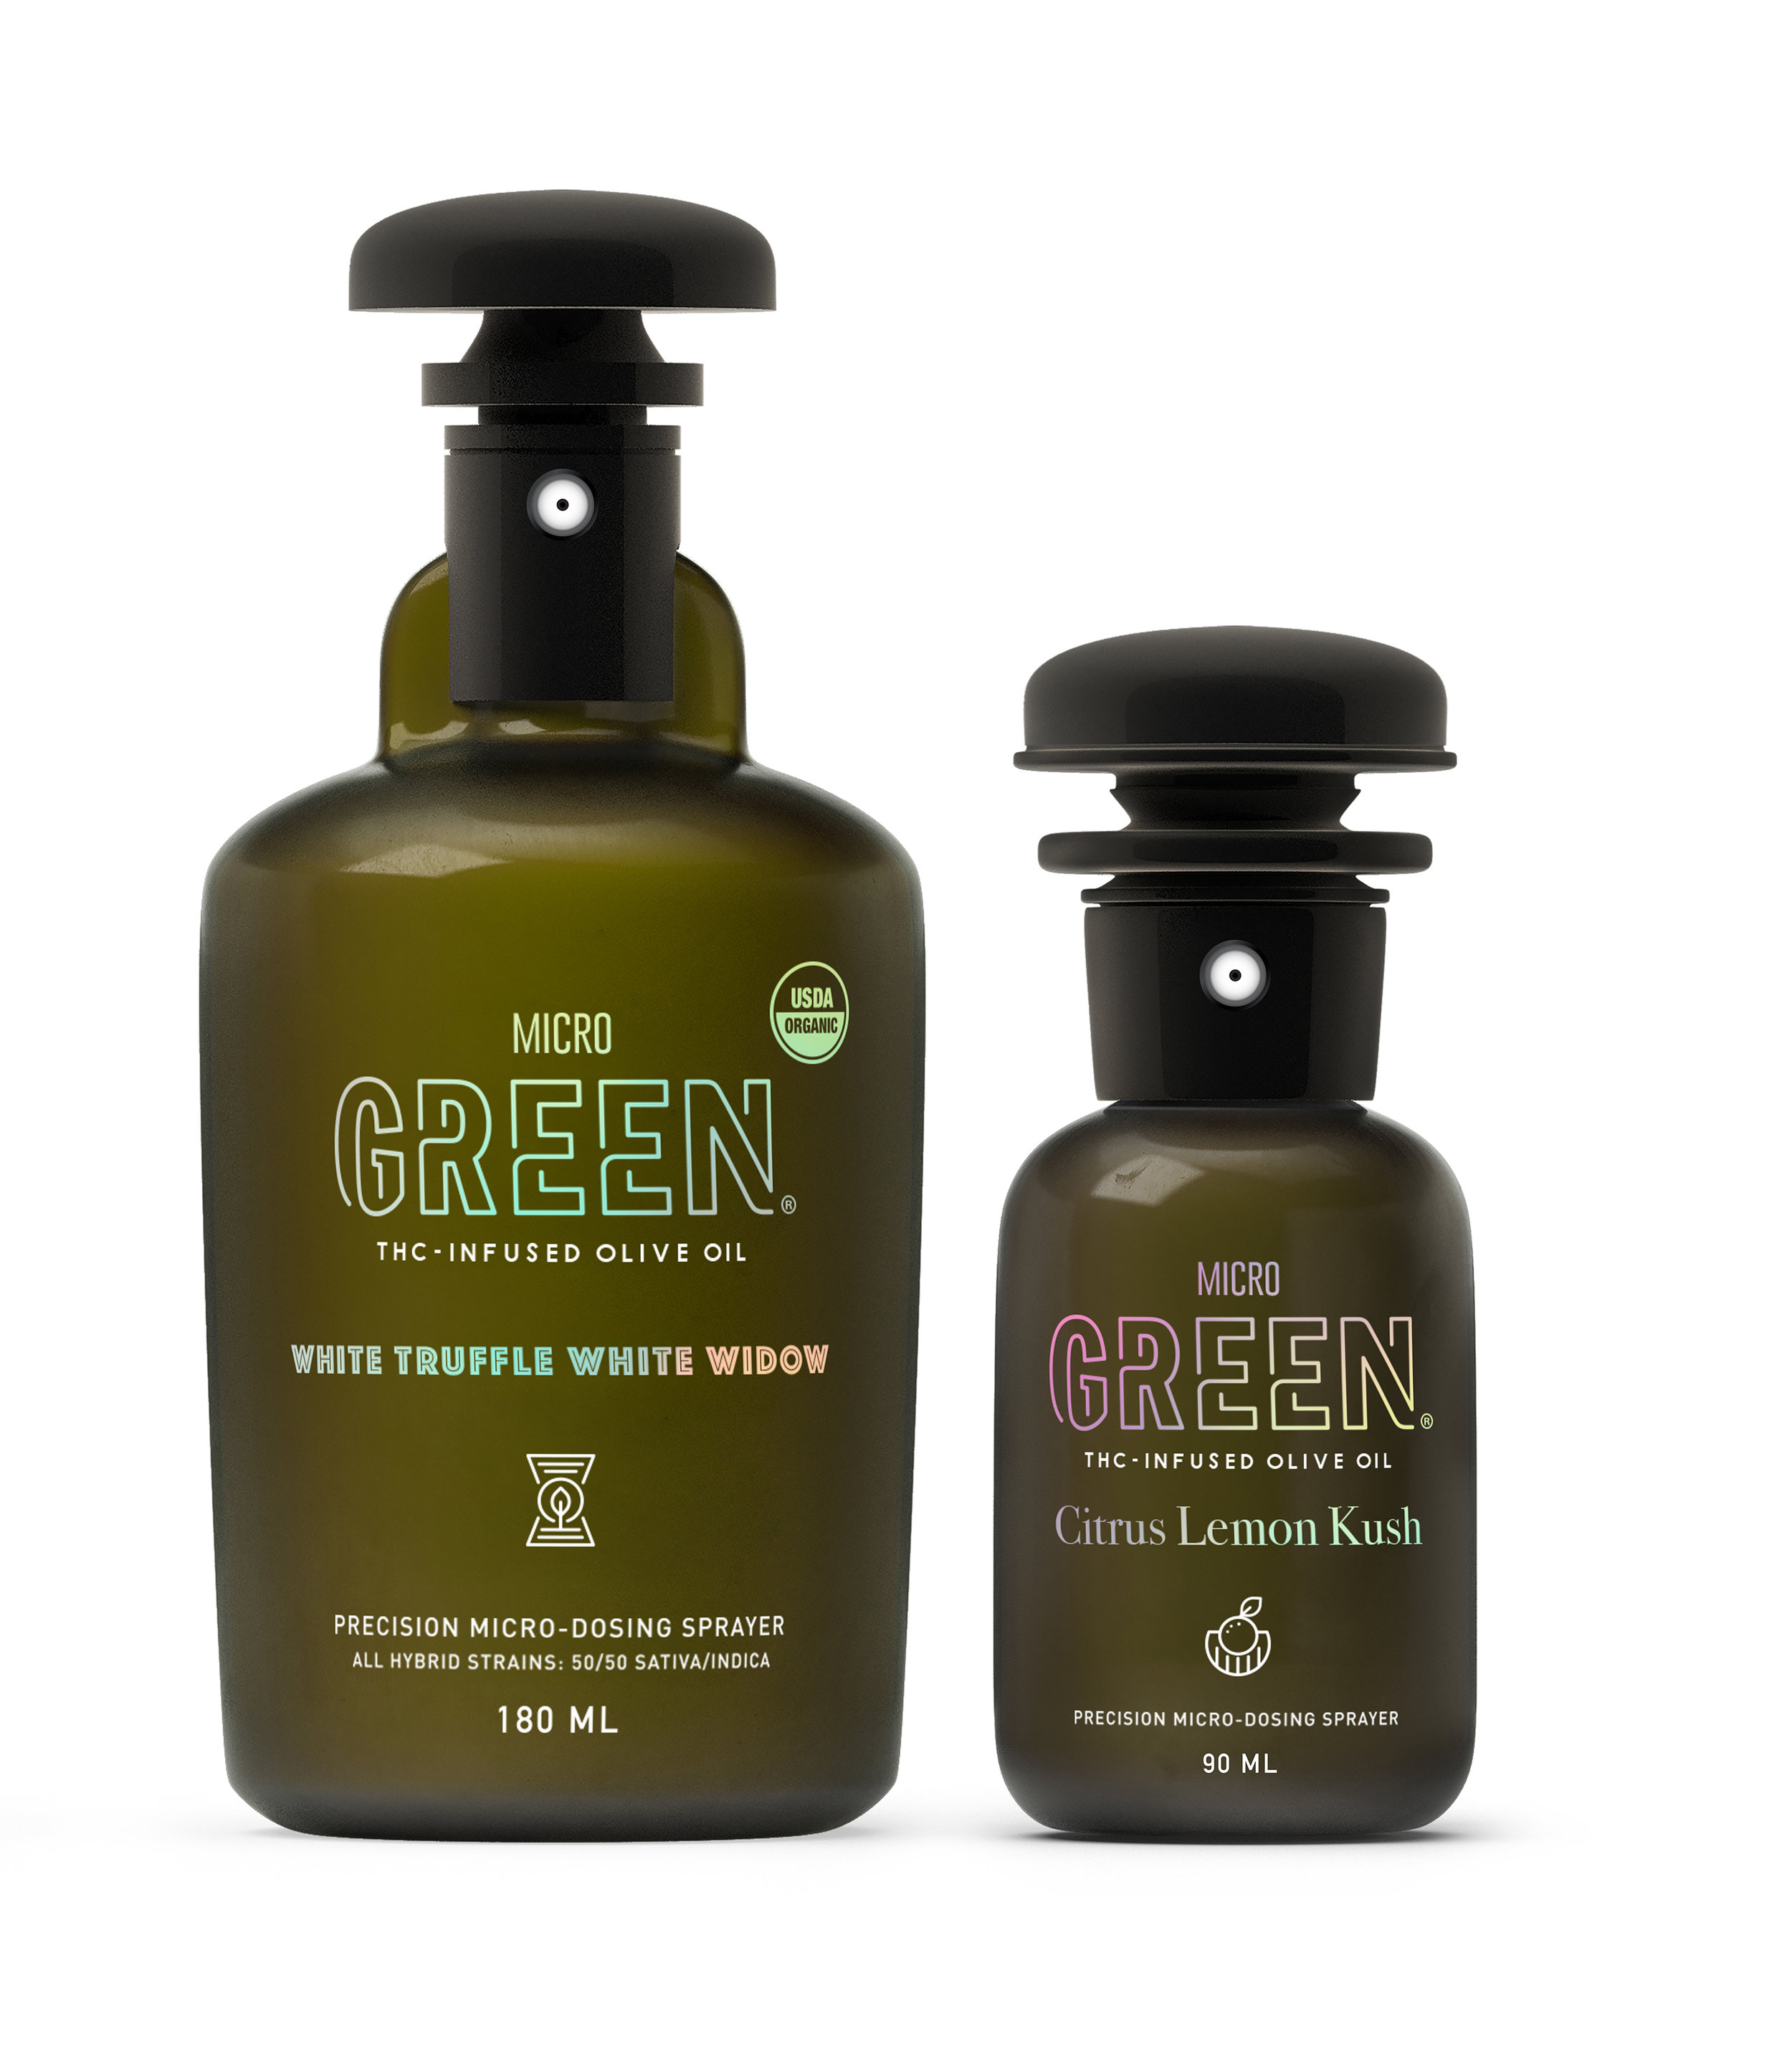 Micro Green    Micro Green brings recreational Marijuana to the dining table in an elegant, refined way. Each bottle of Micro Green THC infused olive oil spray is designed to deliver a precise dose of relaxation to whatever food you wish.